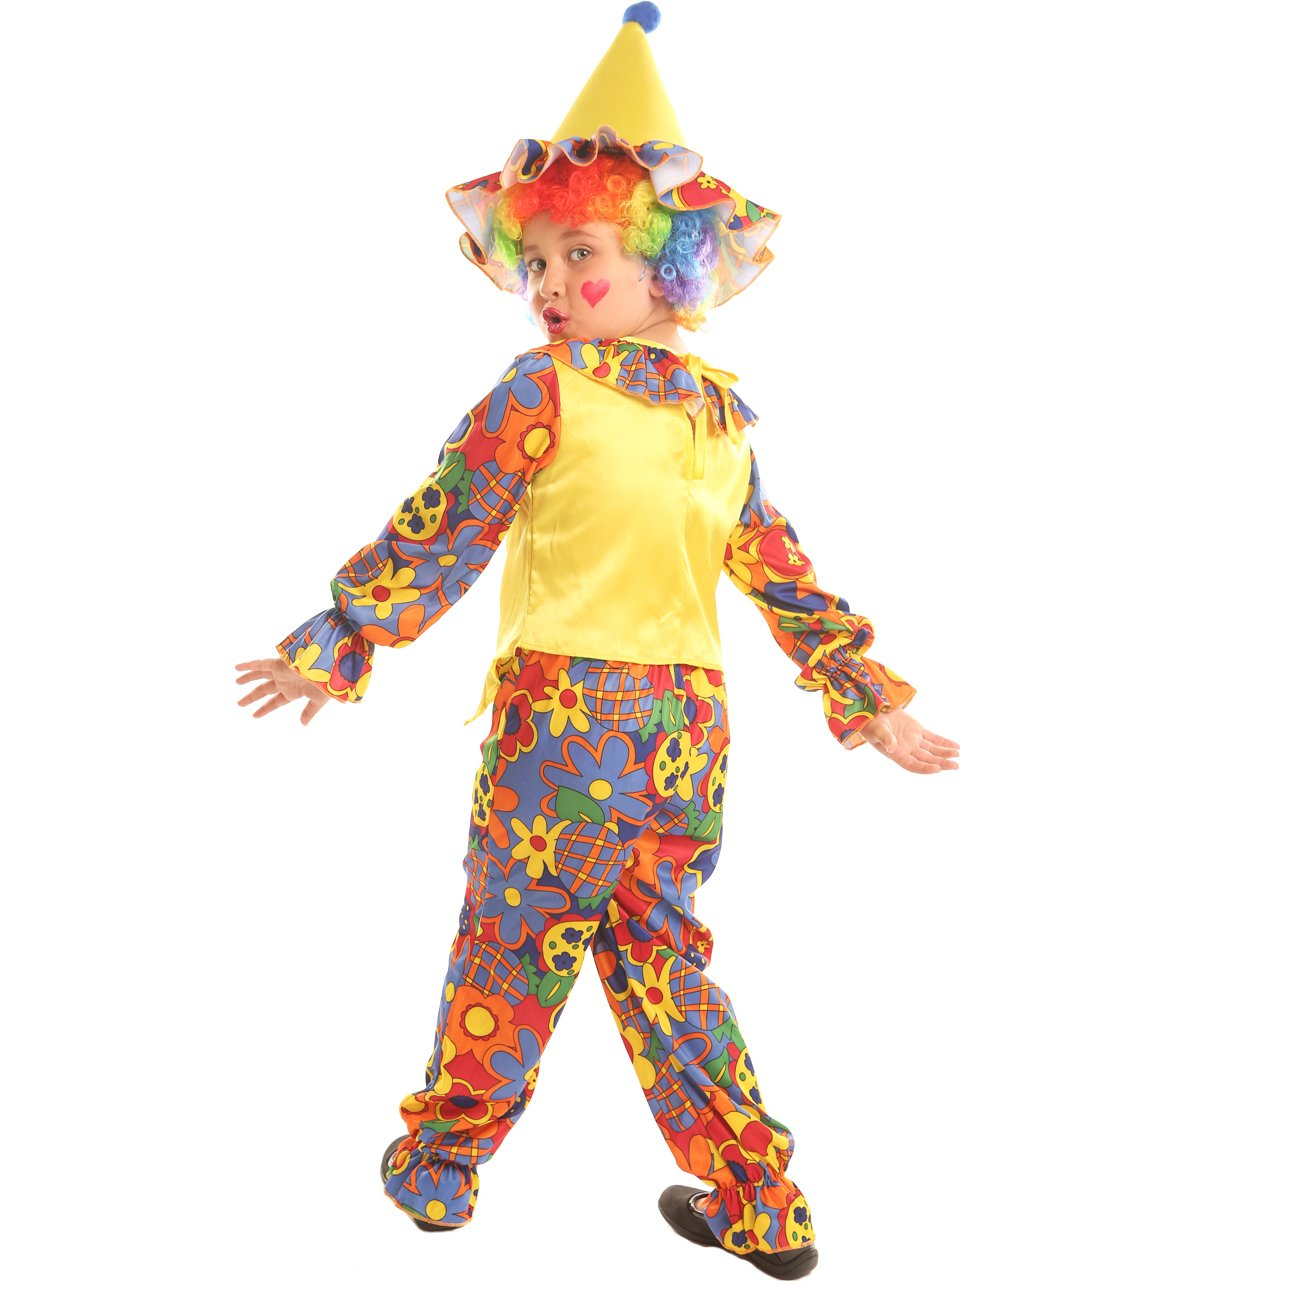 Disiao Kids Big Top Clown Costume for Little Boys Grils Fancy Ball Christmas Halloween Christmas Party Cospaly Suits